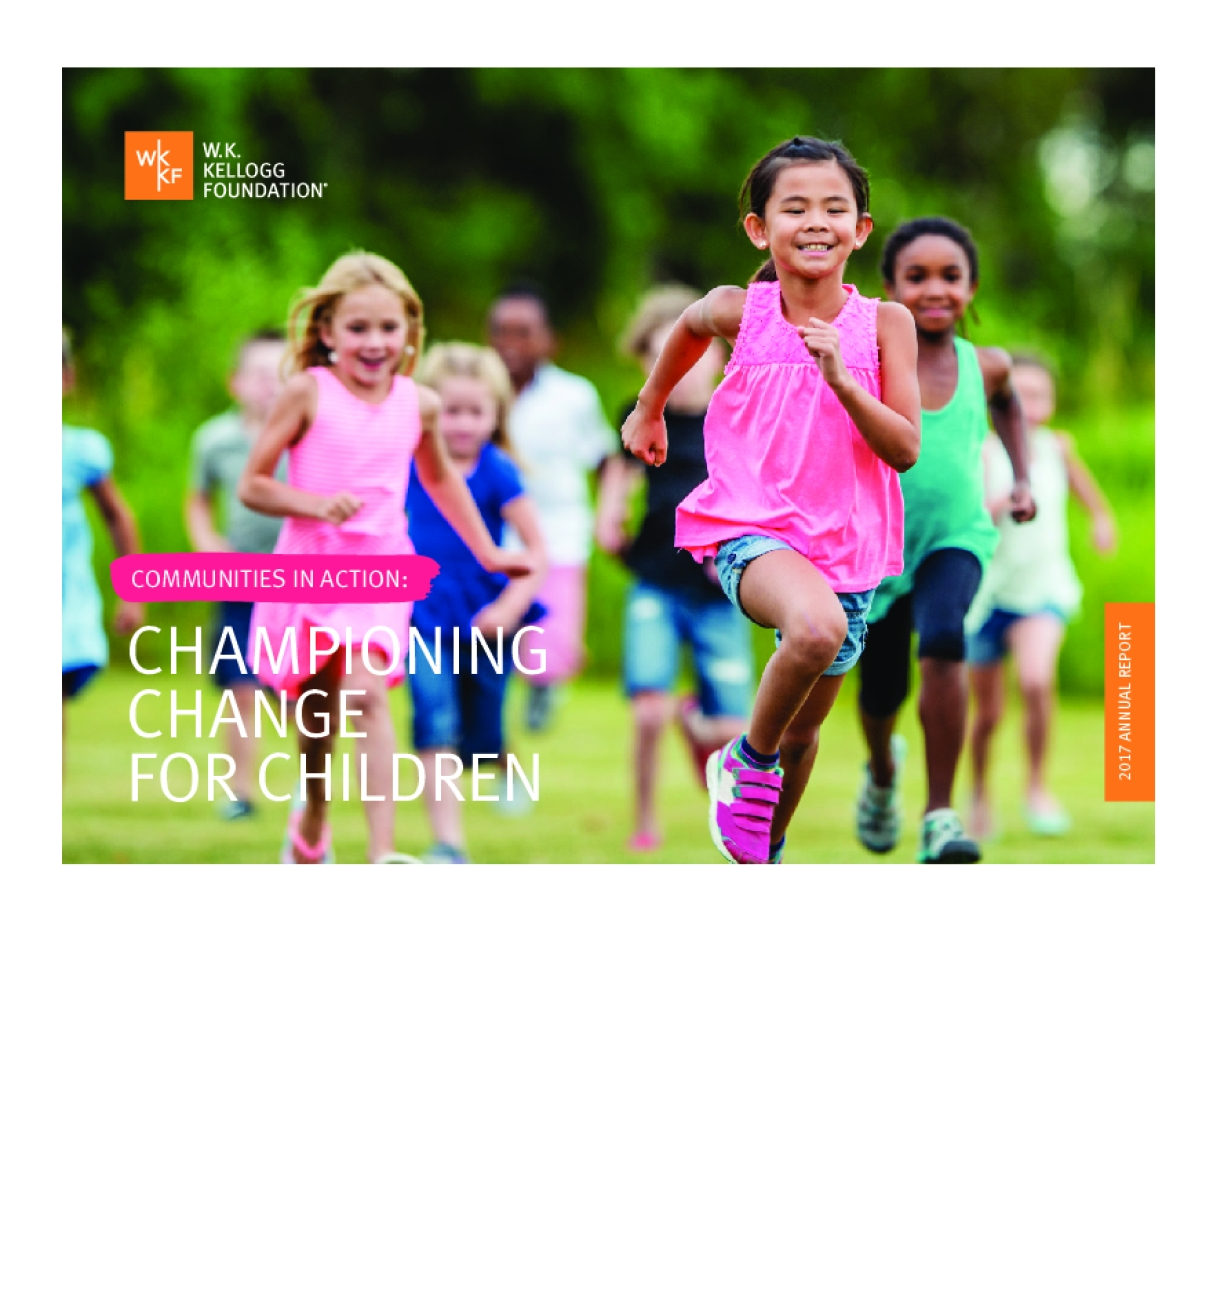 Communities in Action: Championing Change for Children